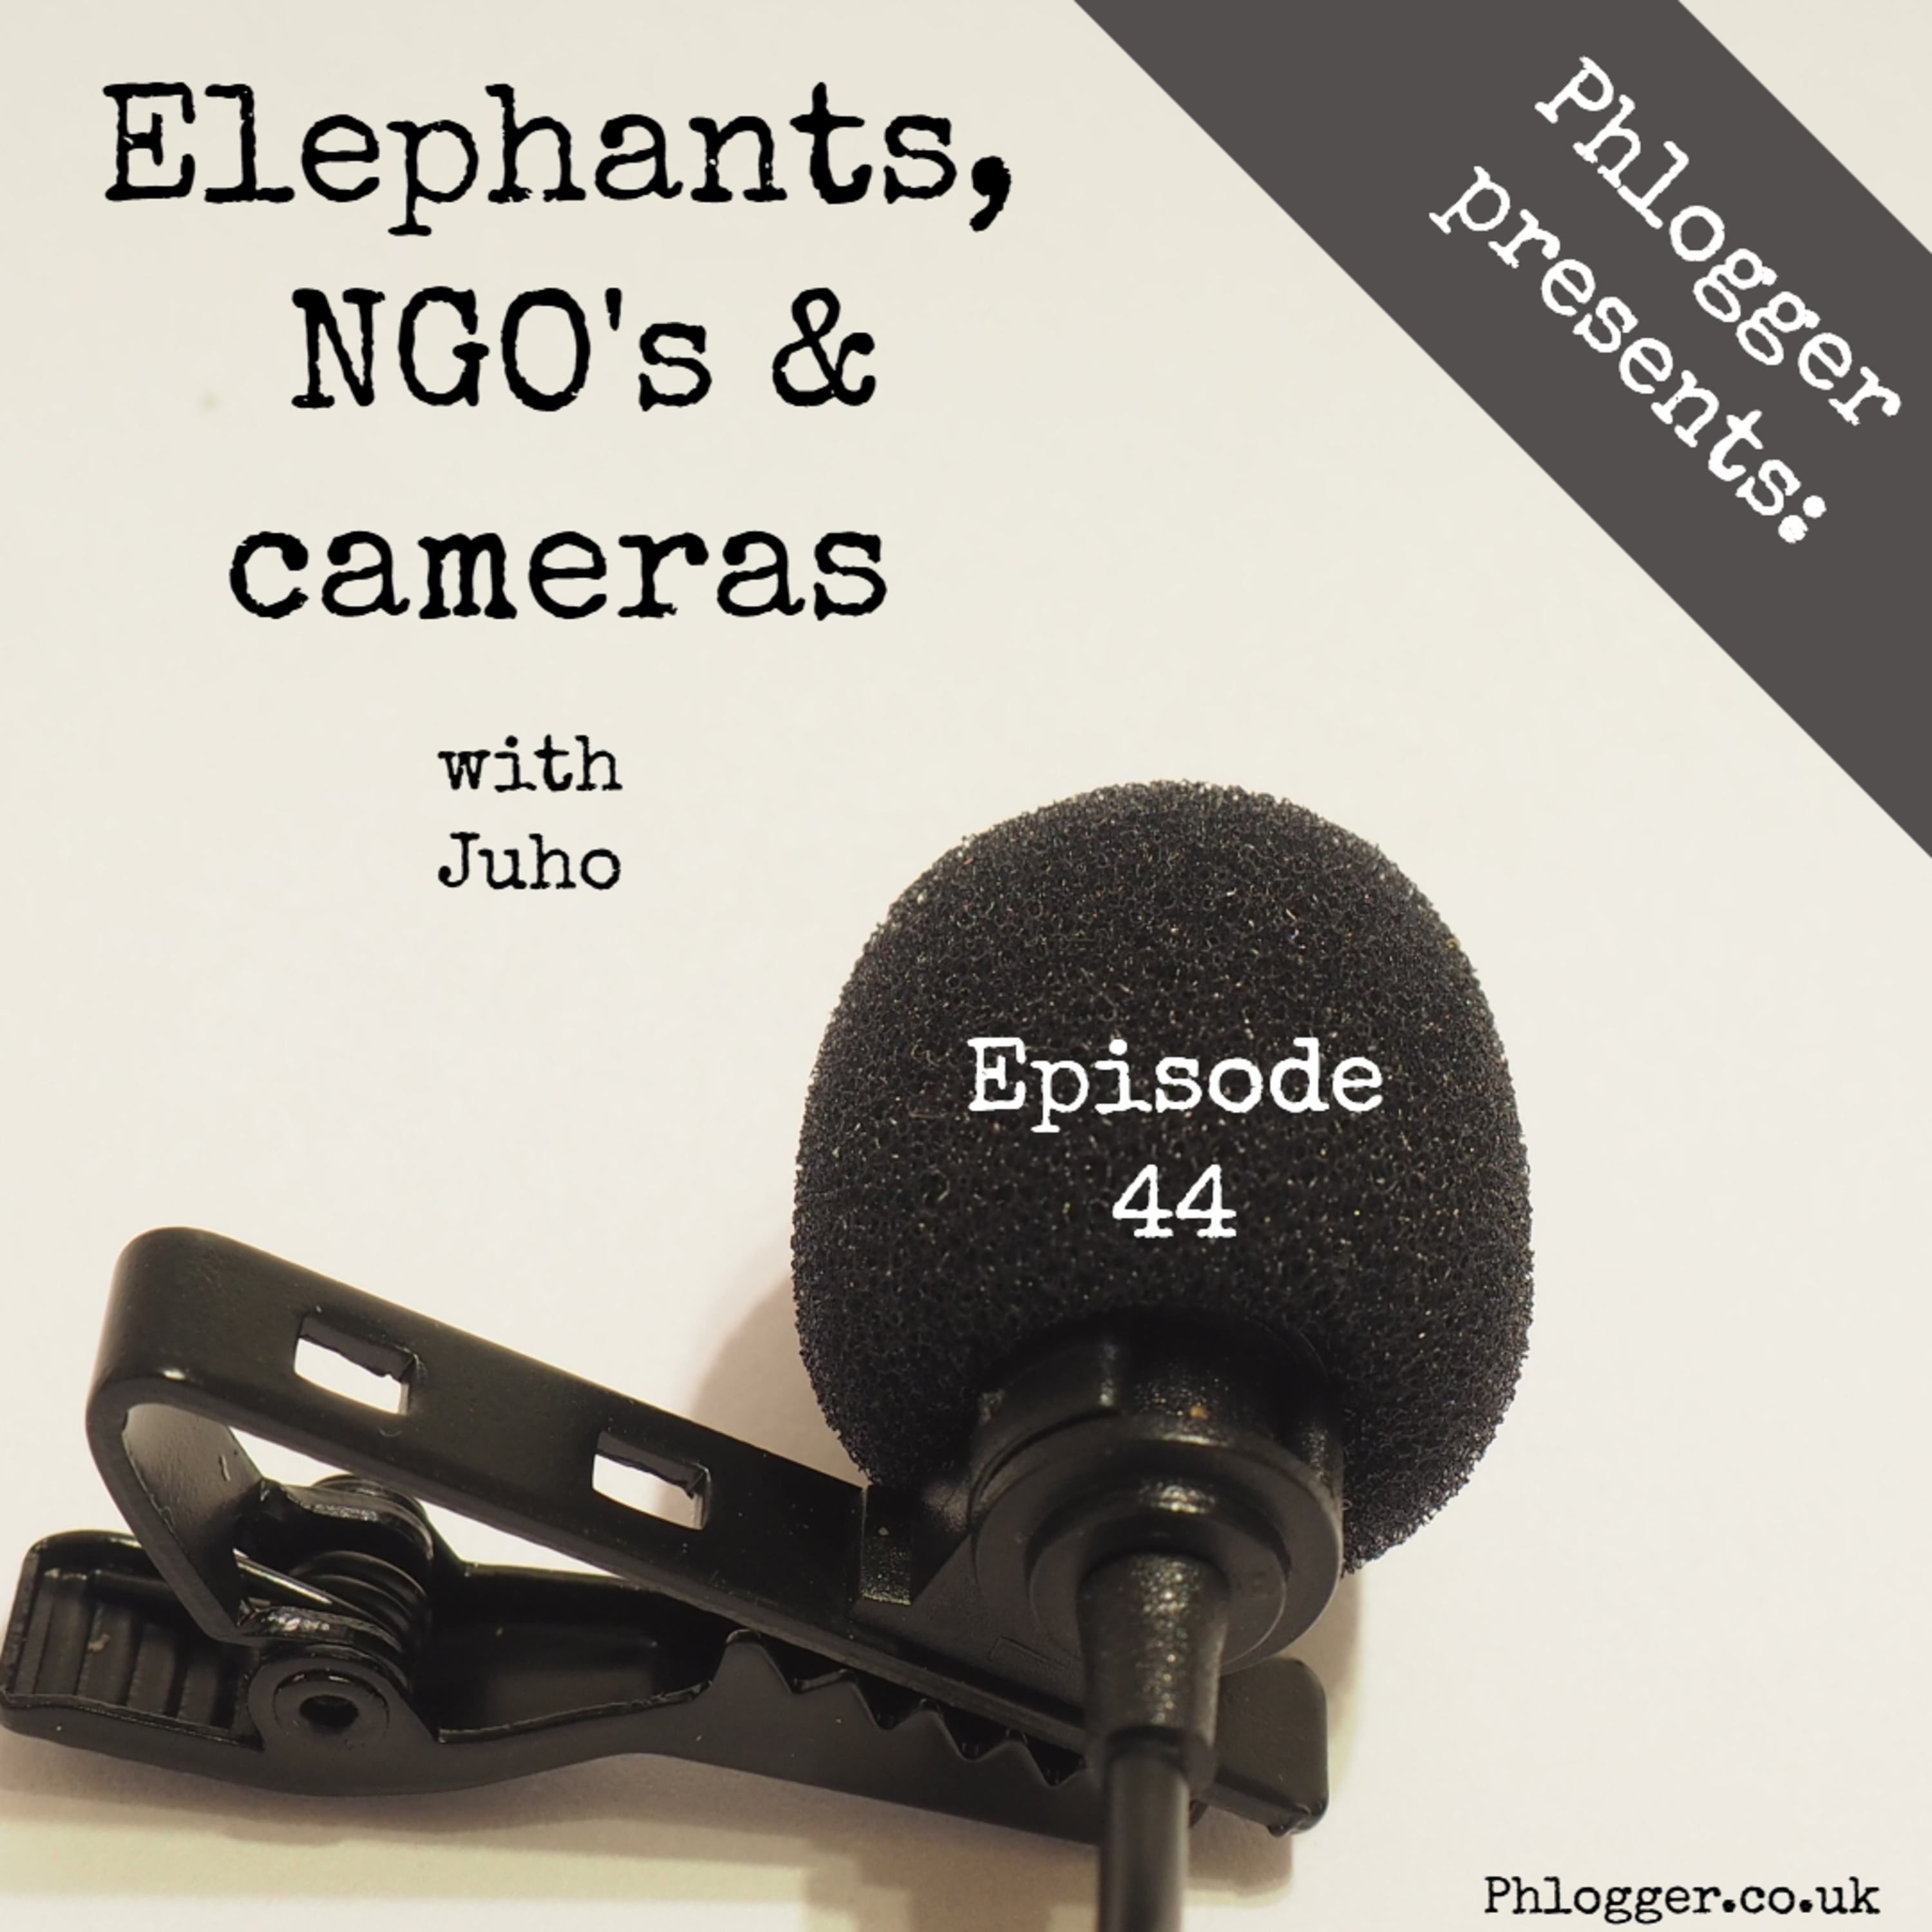 Elephants, NGO's & cameras (interview with Juho)